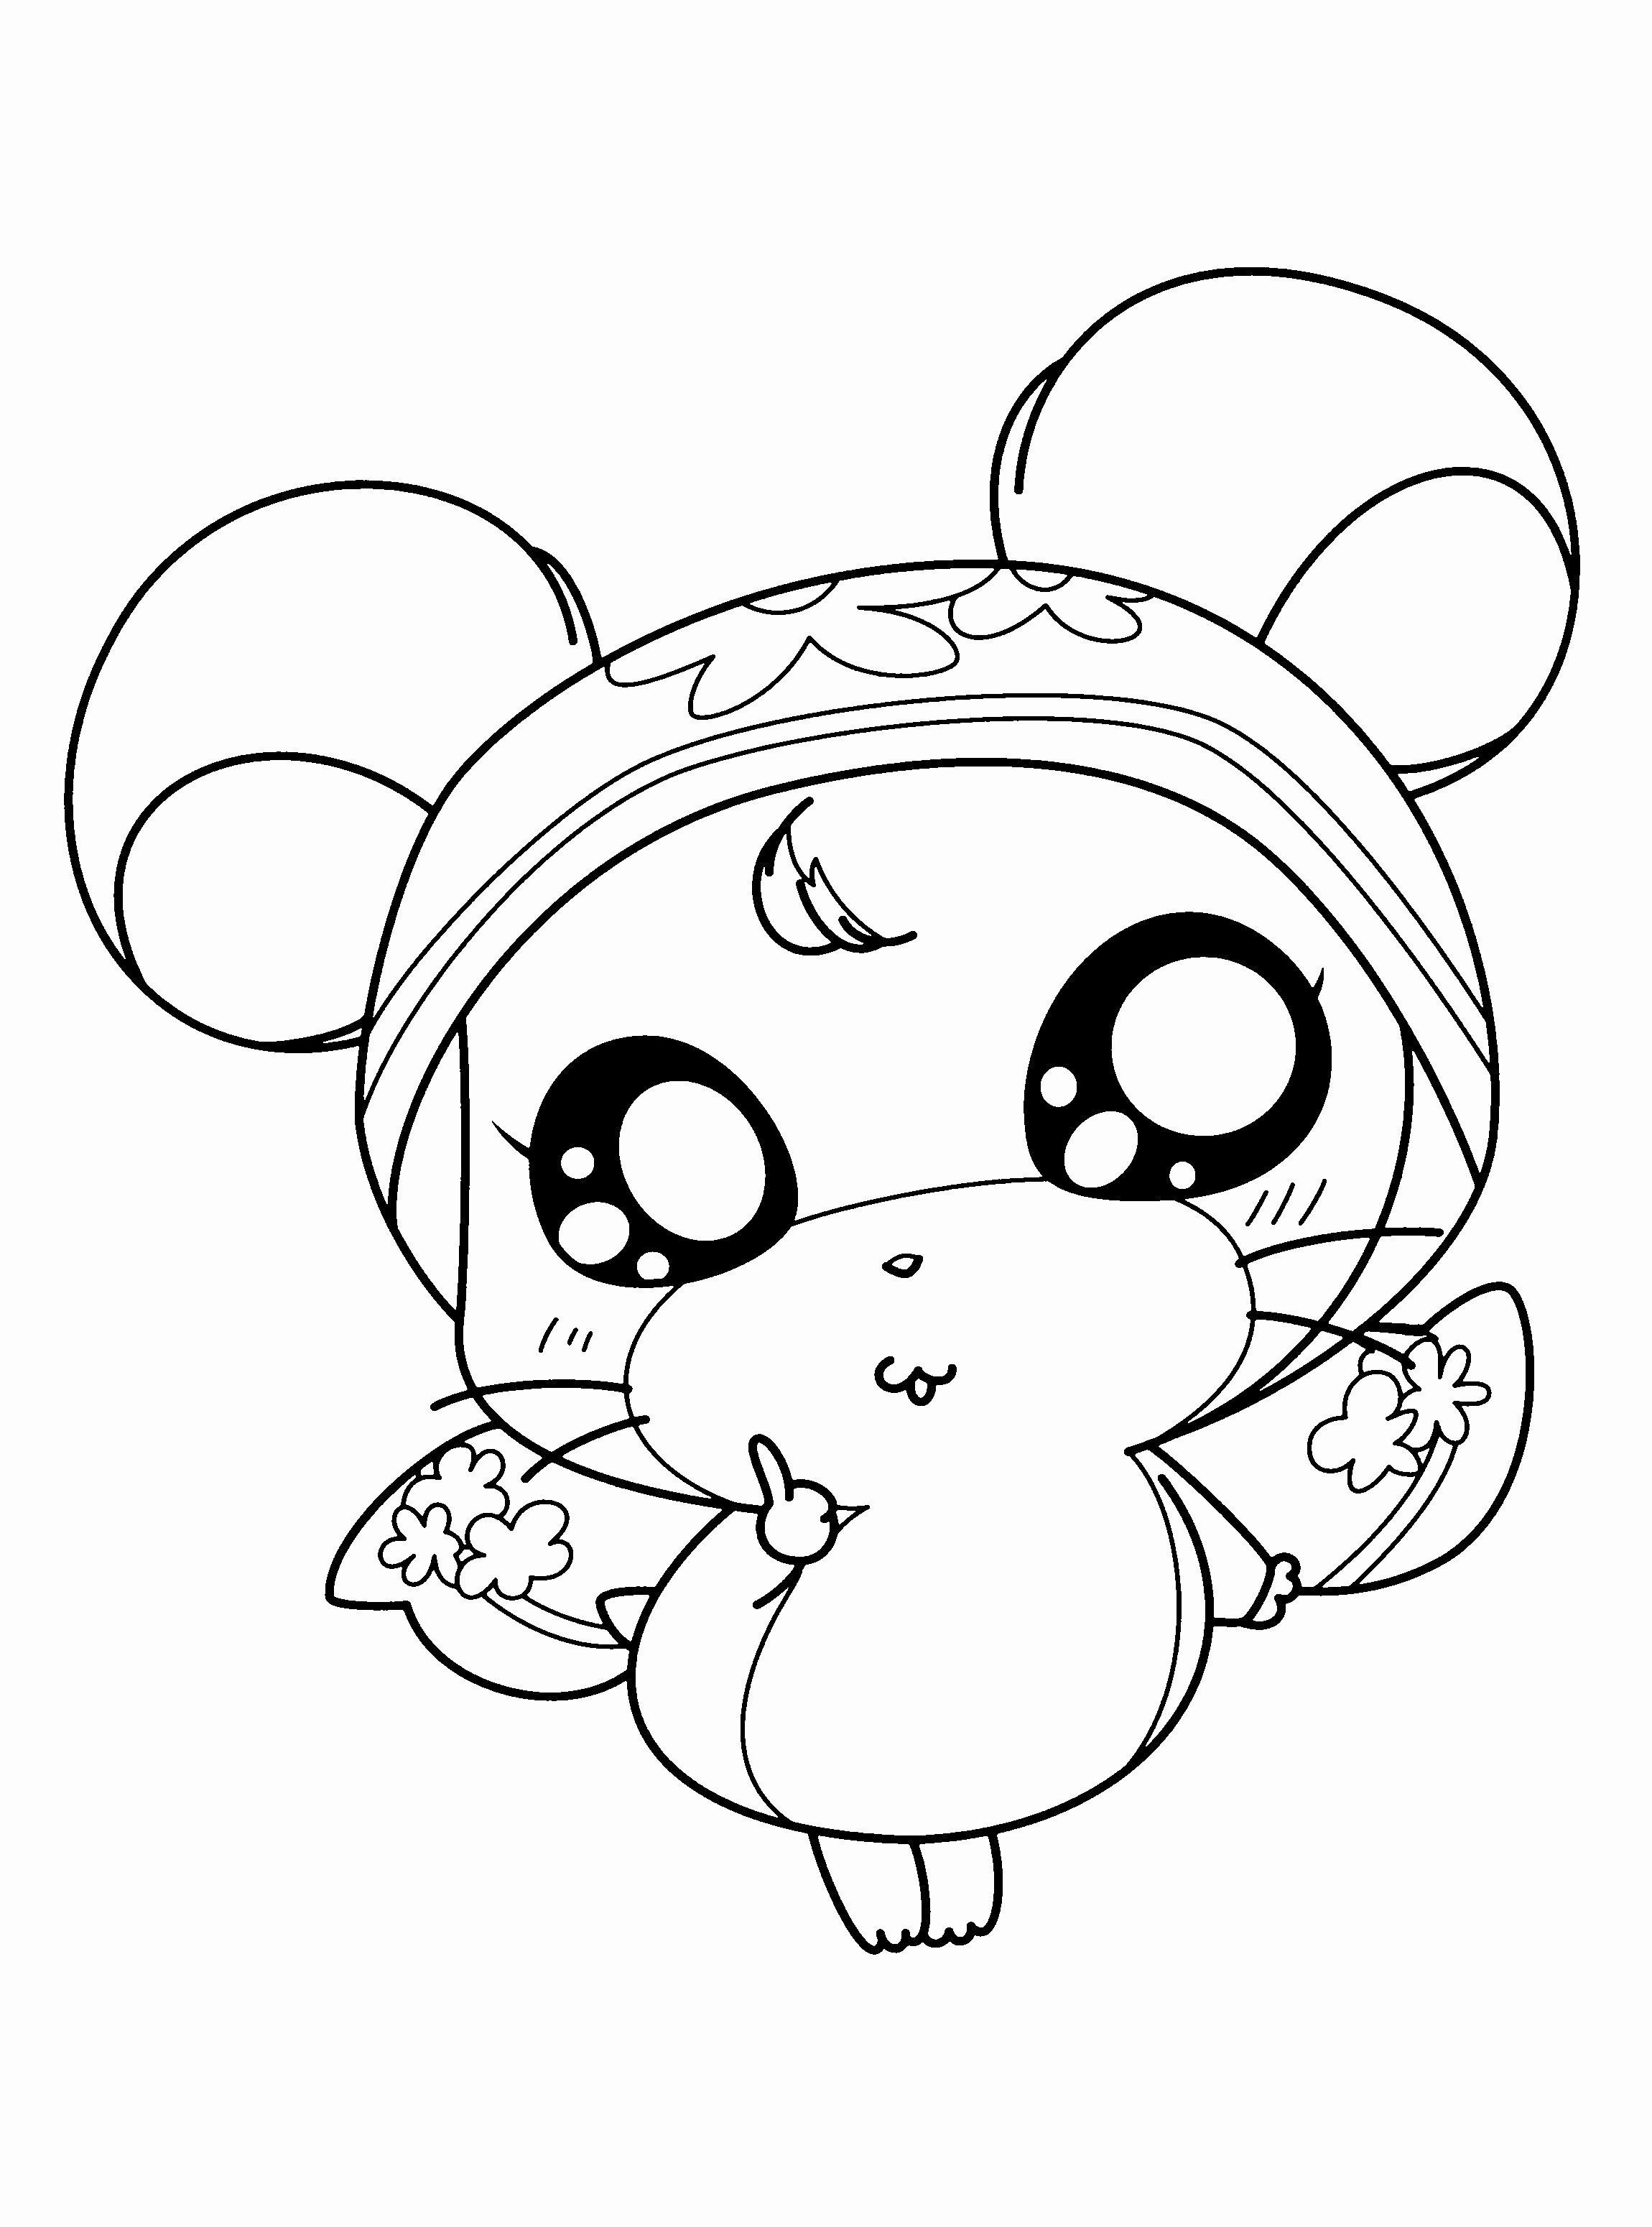 Printable Abc Coloring Pages Unique Picture To Coloring Page Awesome Abc Mouse Coloring Pa In 2020 Unicorn Coloring Pages Pokemon Coloring Pages Mermaid Coloring Pages